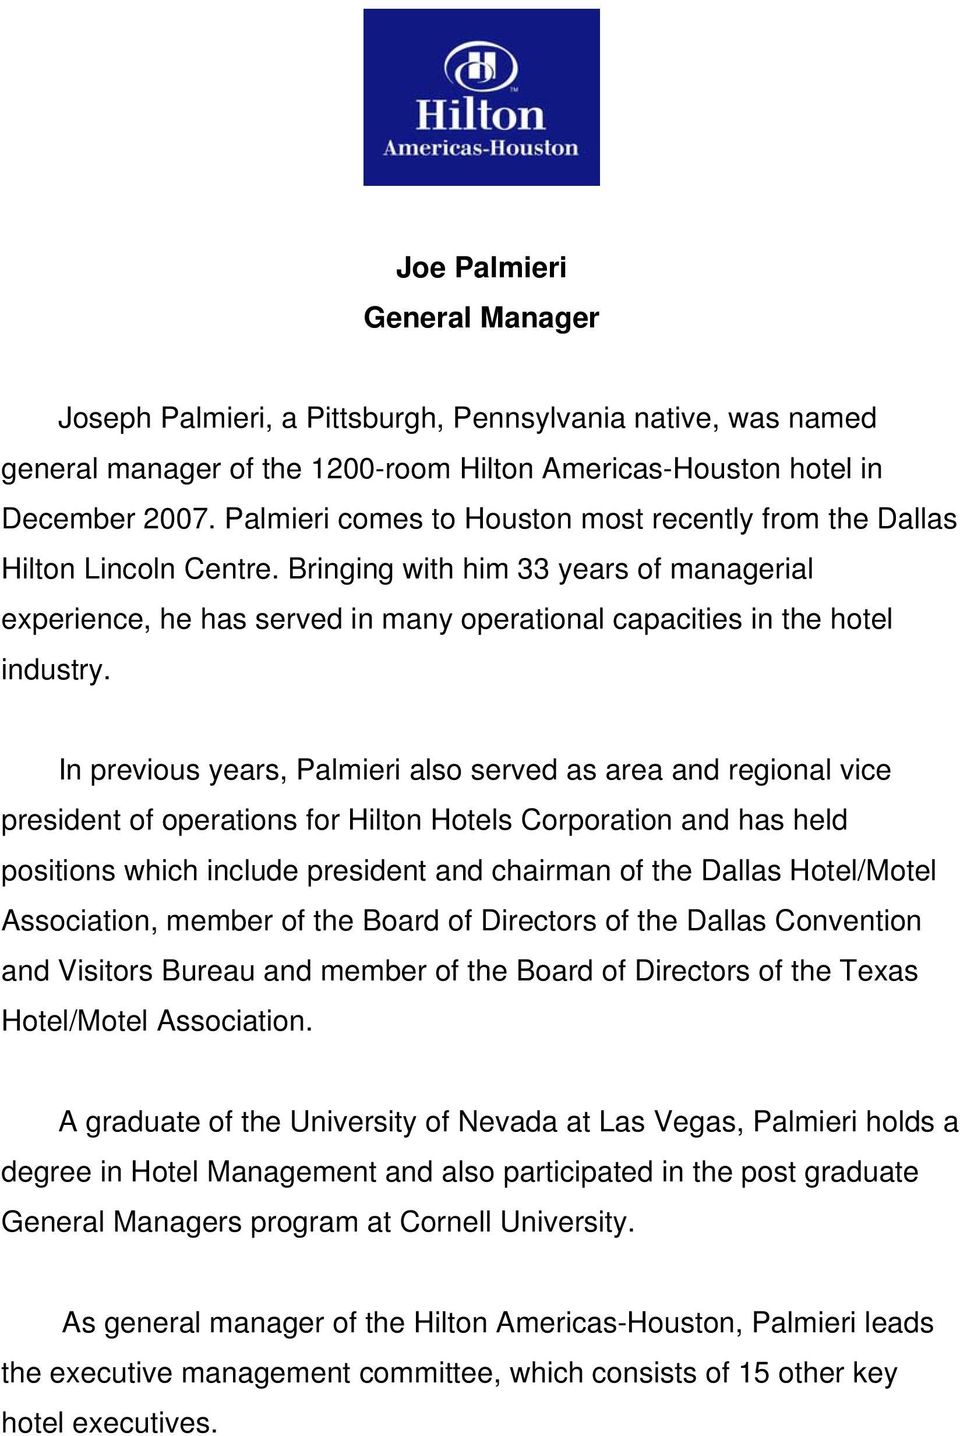 In previous years, Palmieri also served as area and regional vice president of operations for Hilton Hotels Corporation and has held positions which include president and chairman of the Dallas